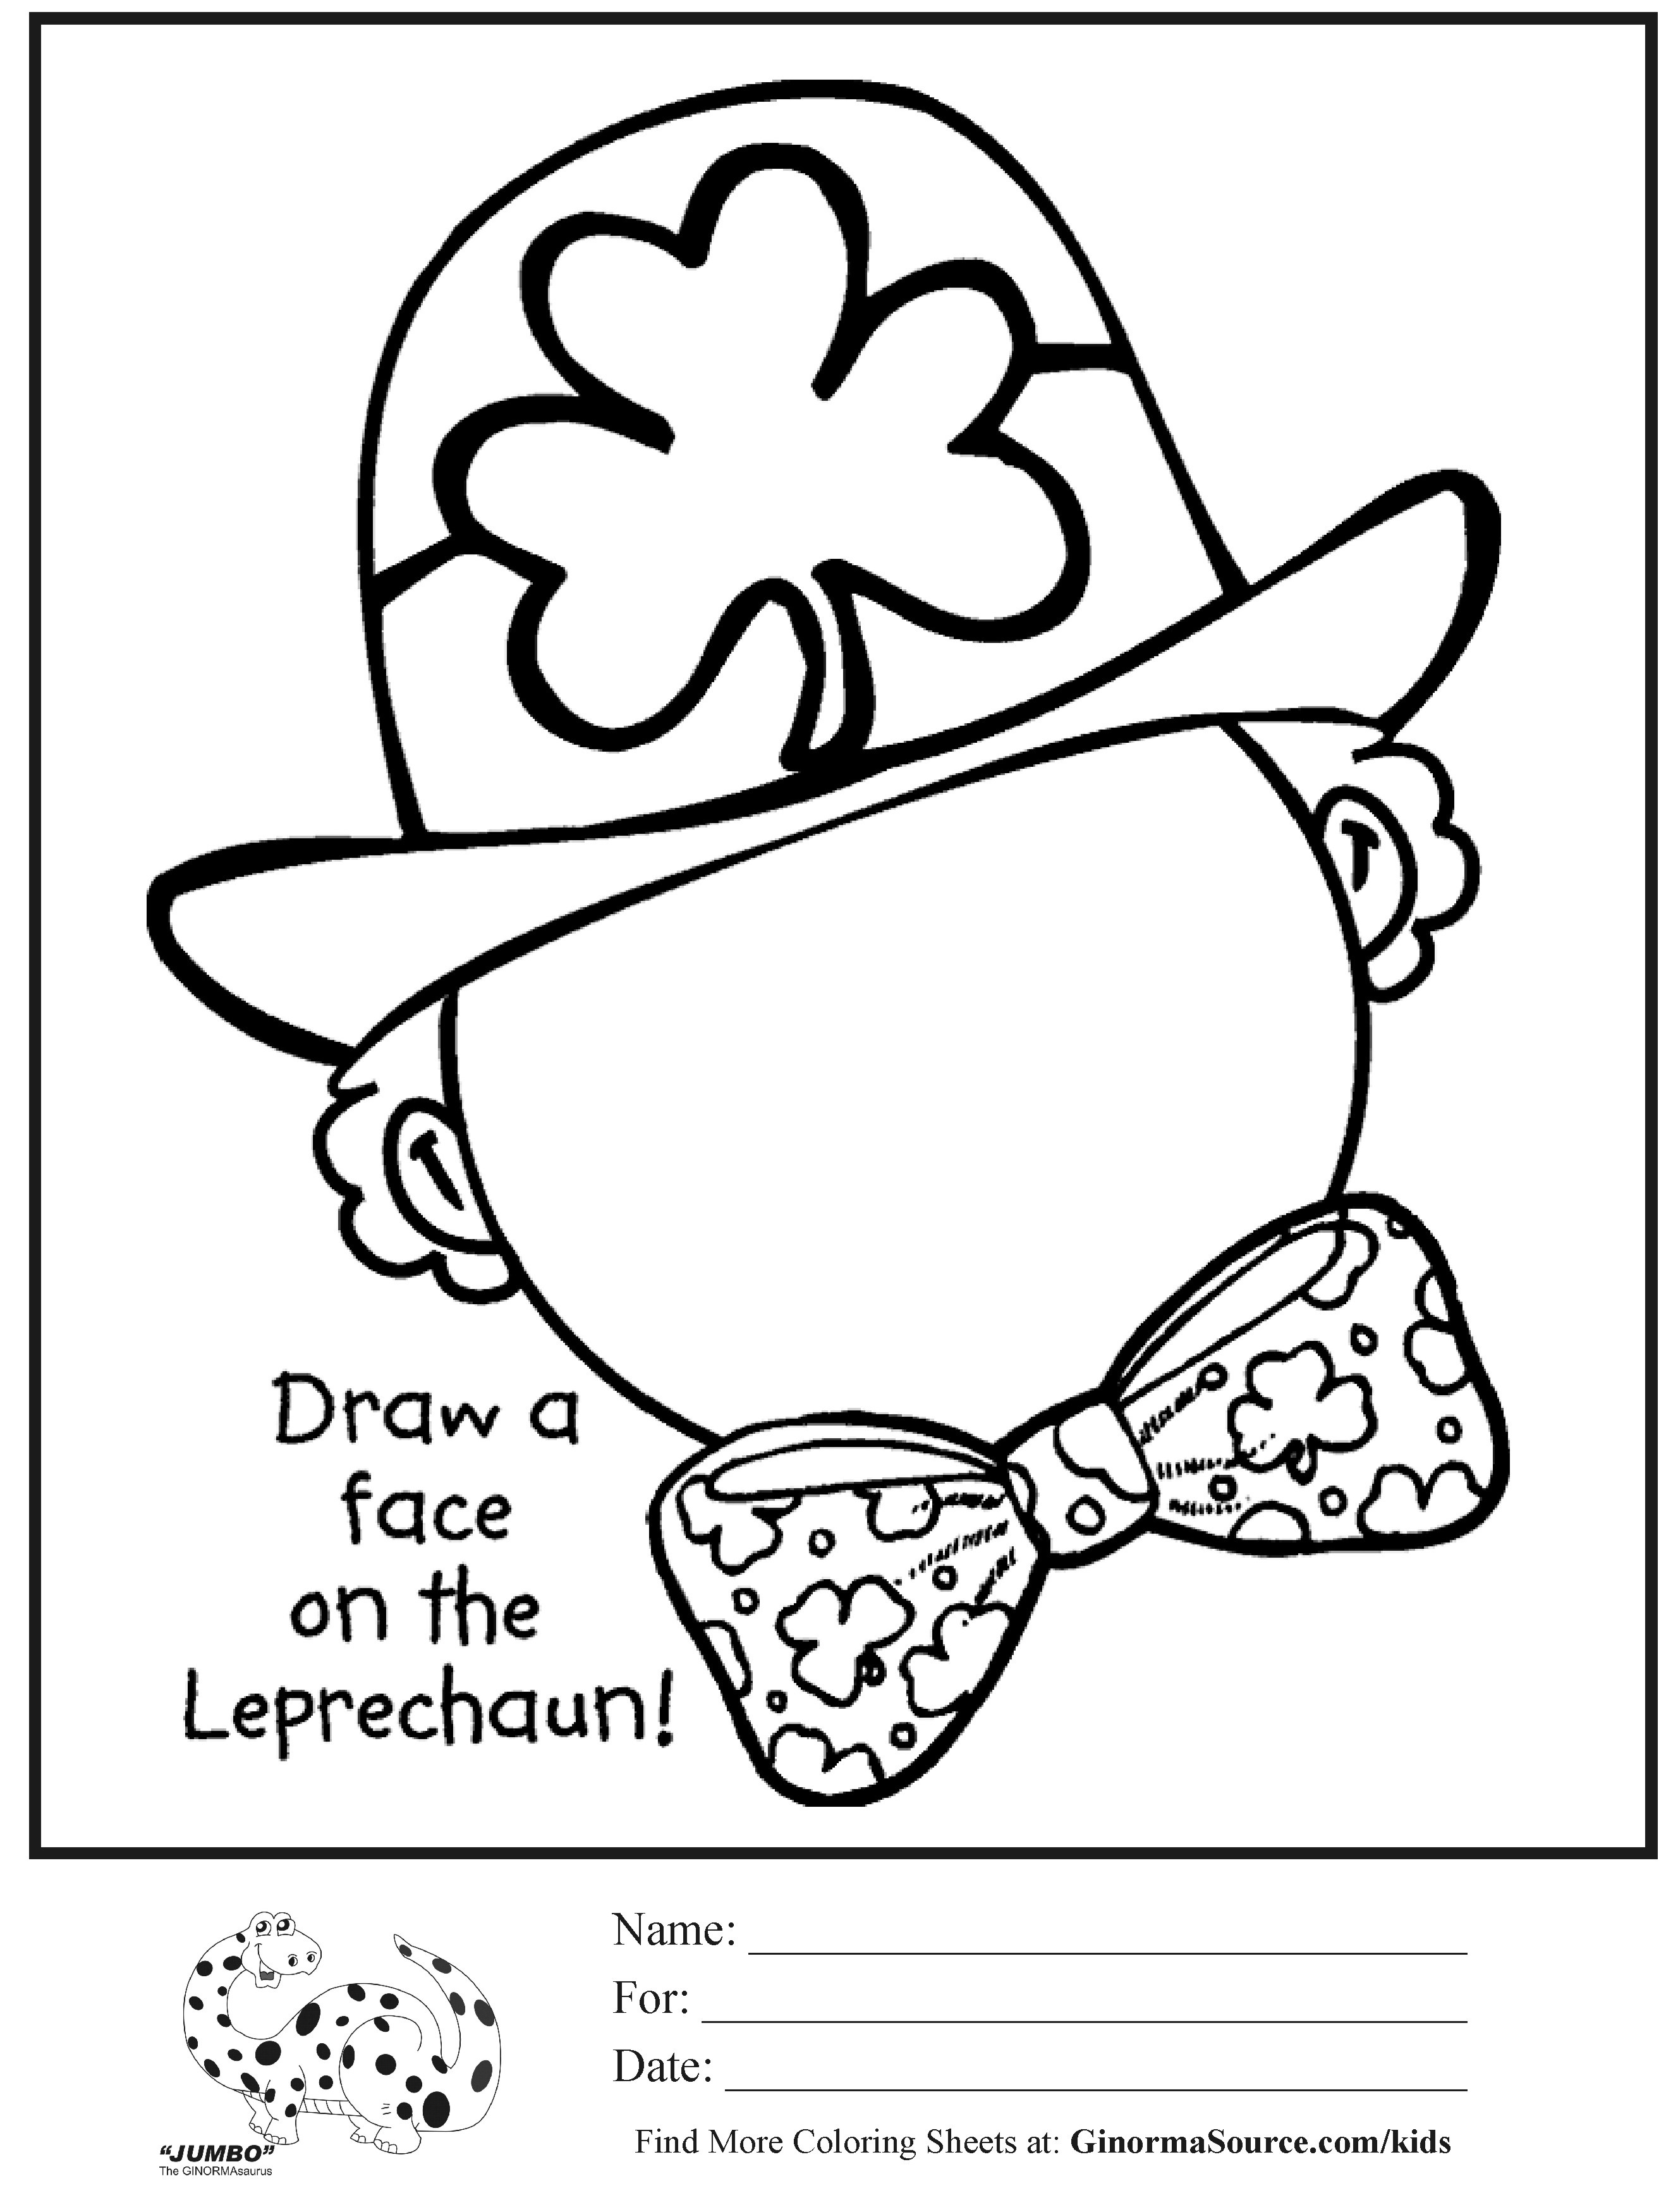 Free St Patricks Day Drawings, Download Free Clip Art, Free Clip Art - Free Printable St Patrick Day Coloring Pages